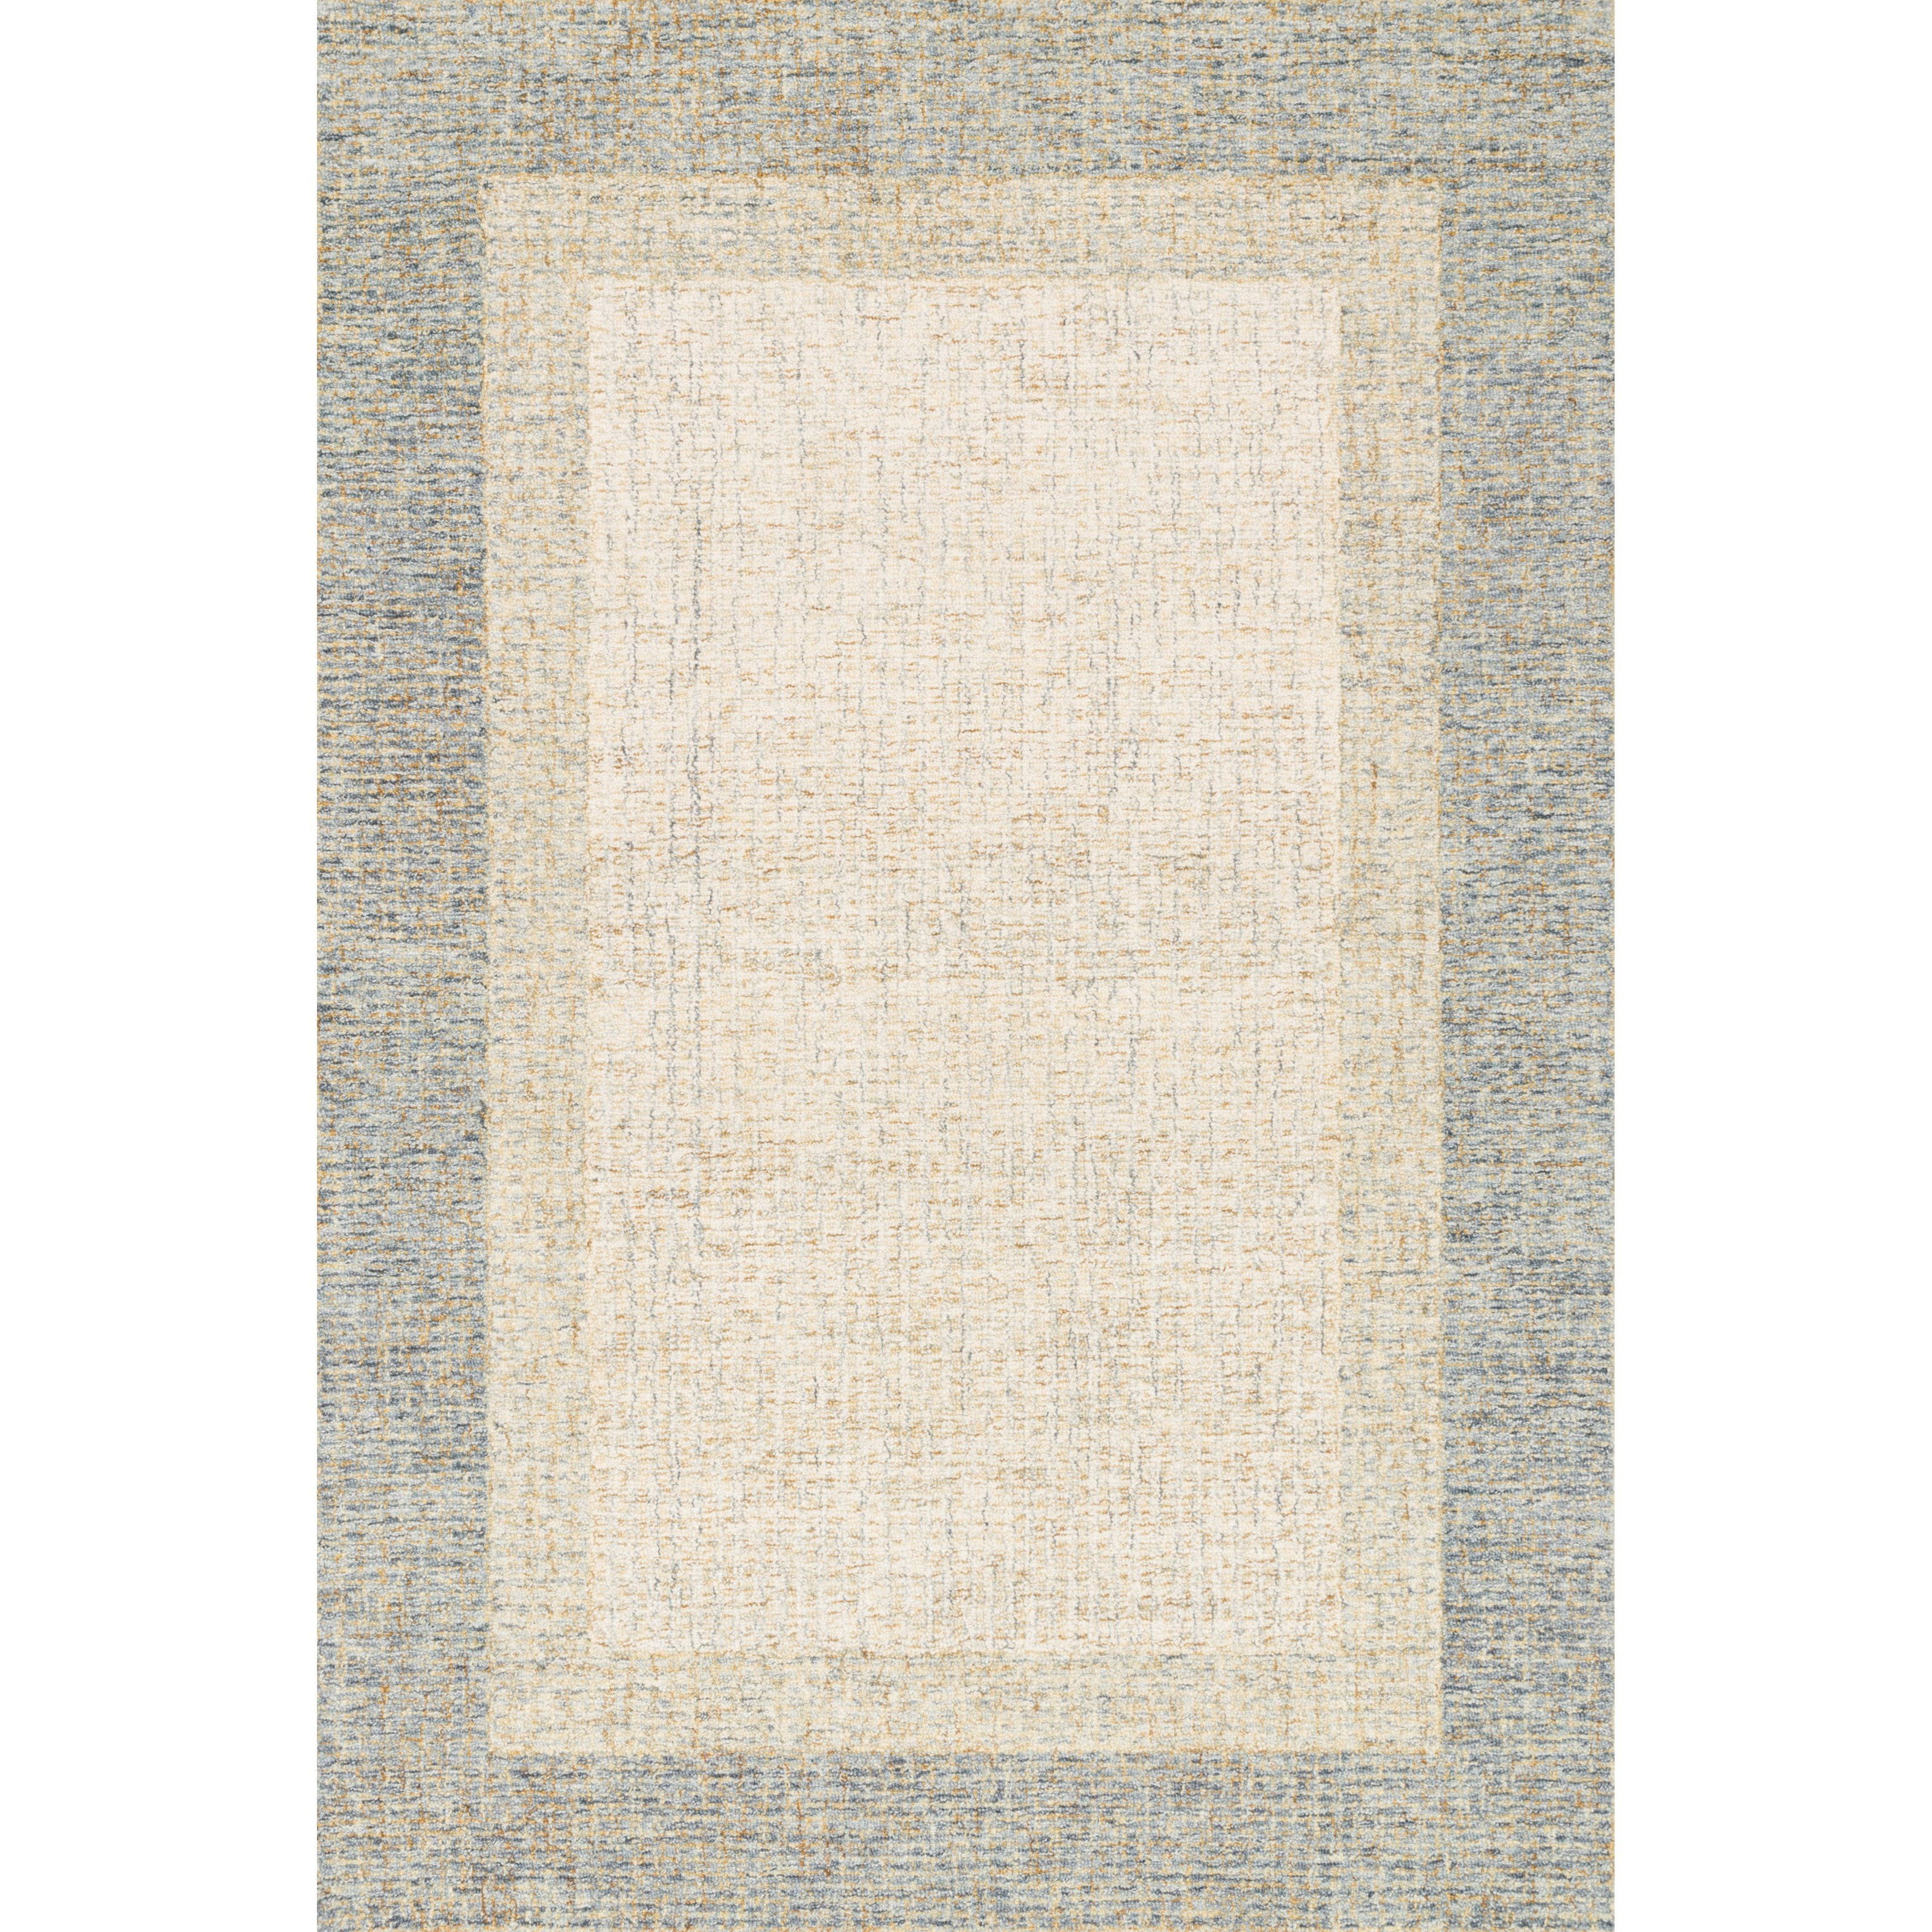 """Rosina 7'9"""" x 9'9"""" Sand Rug by Loloi Rugs at Virginia Furniture Market"""